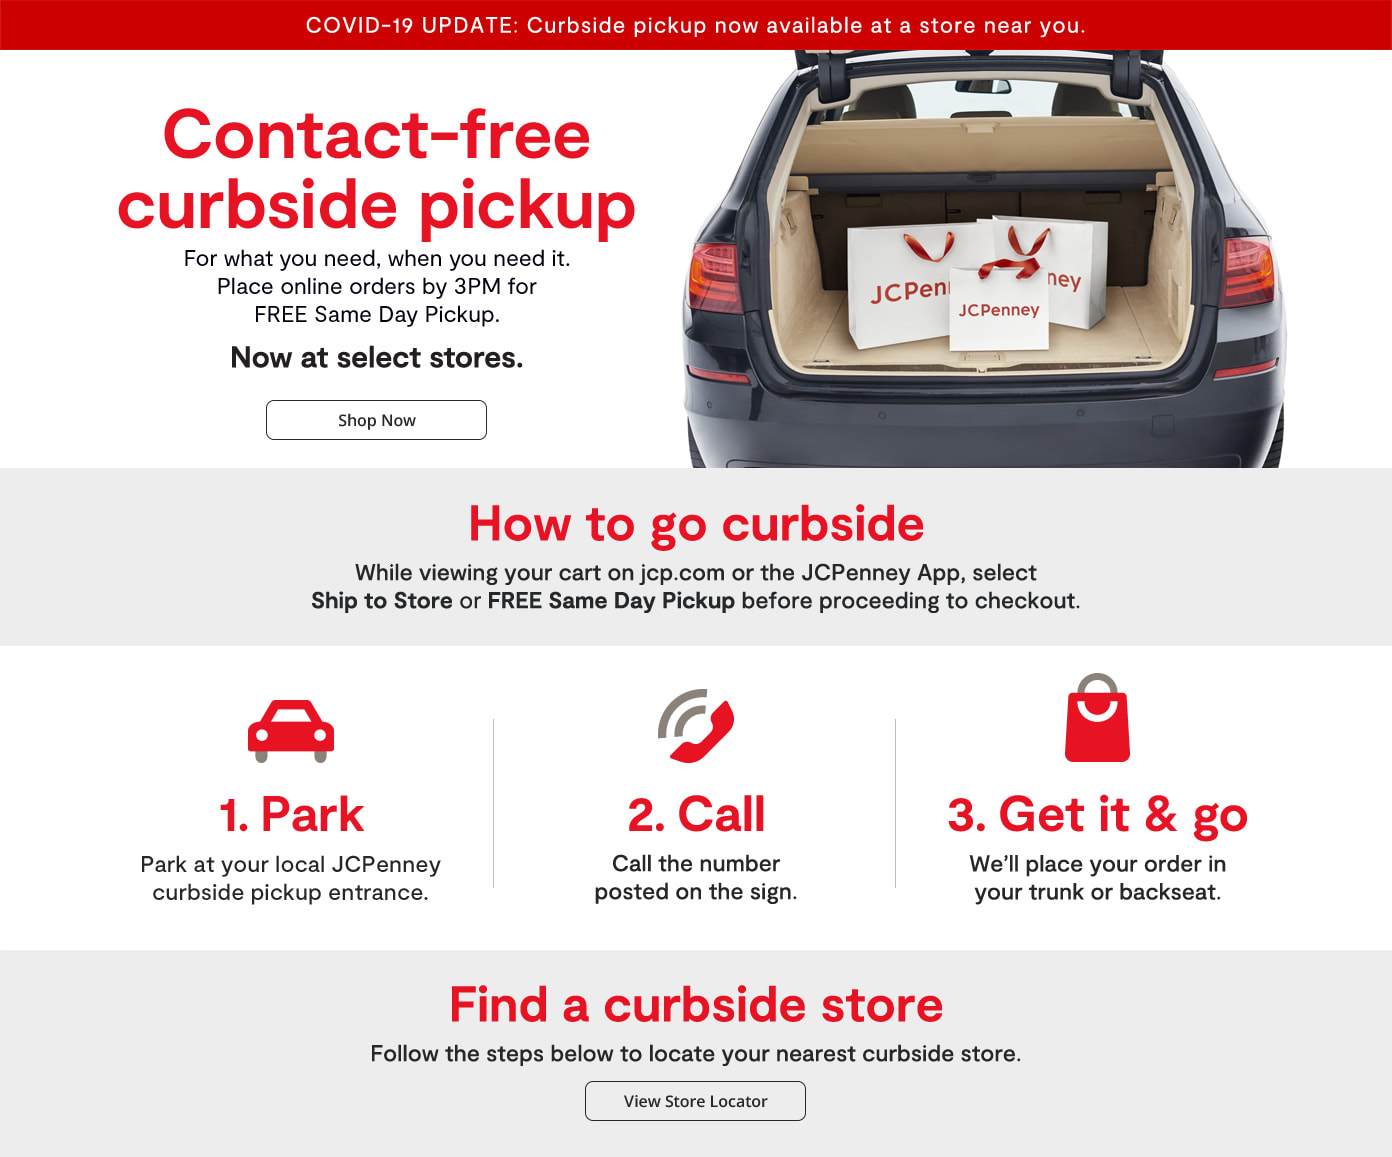 contact-free-curbside-pickup-for-what-you-need-when-you-need-it-place-online-orders-by-3pm-for-free-same-day-pickup-park-call-get-it-